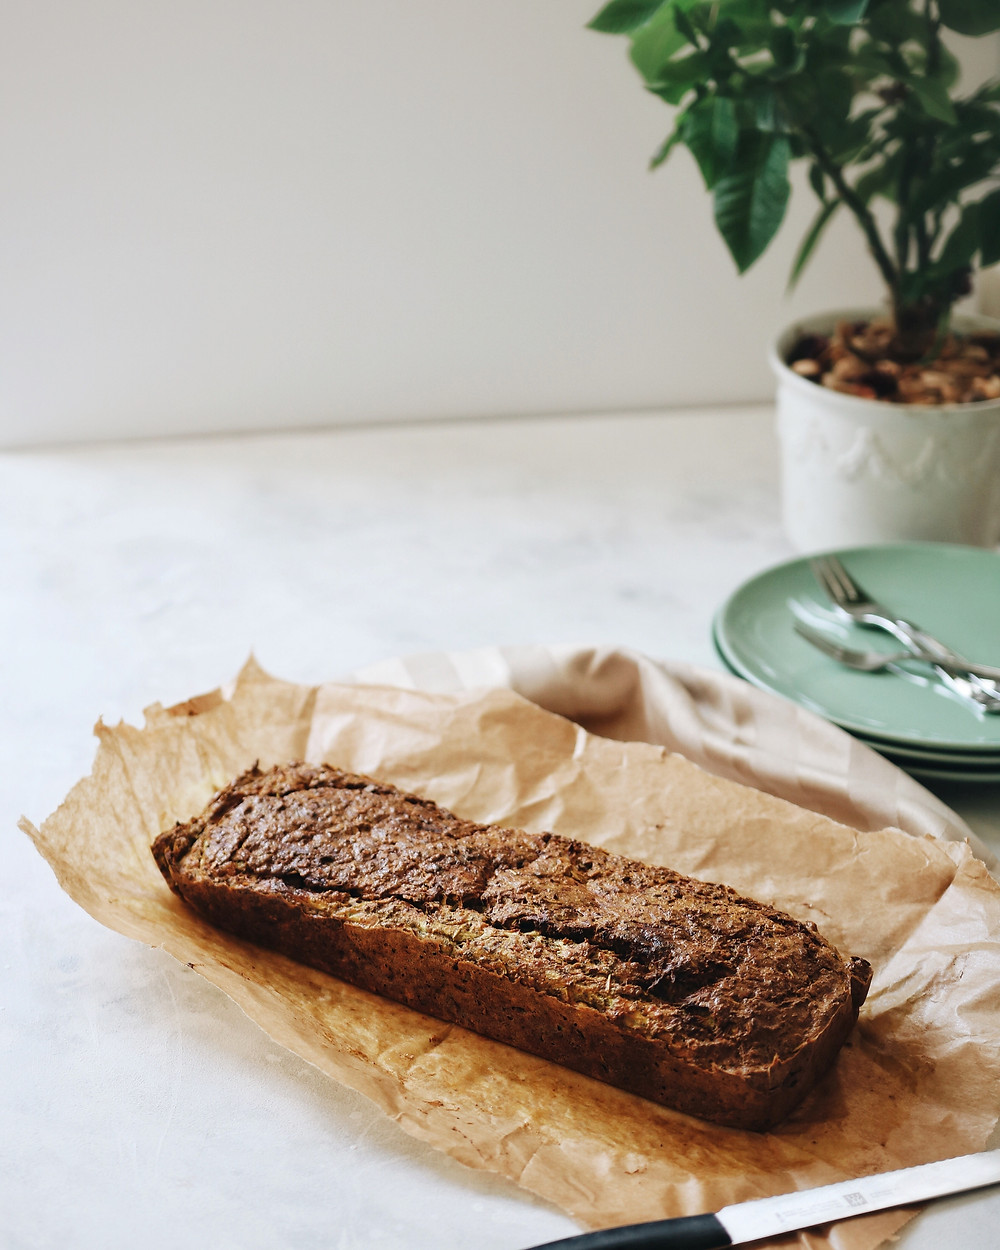 A spiced gluten free zucchini bread on a white background, shot from the side.